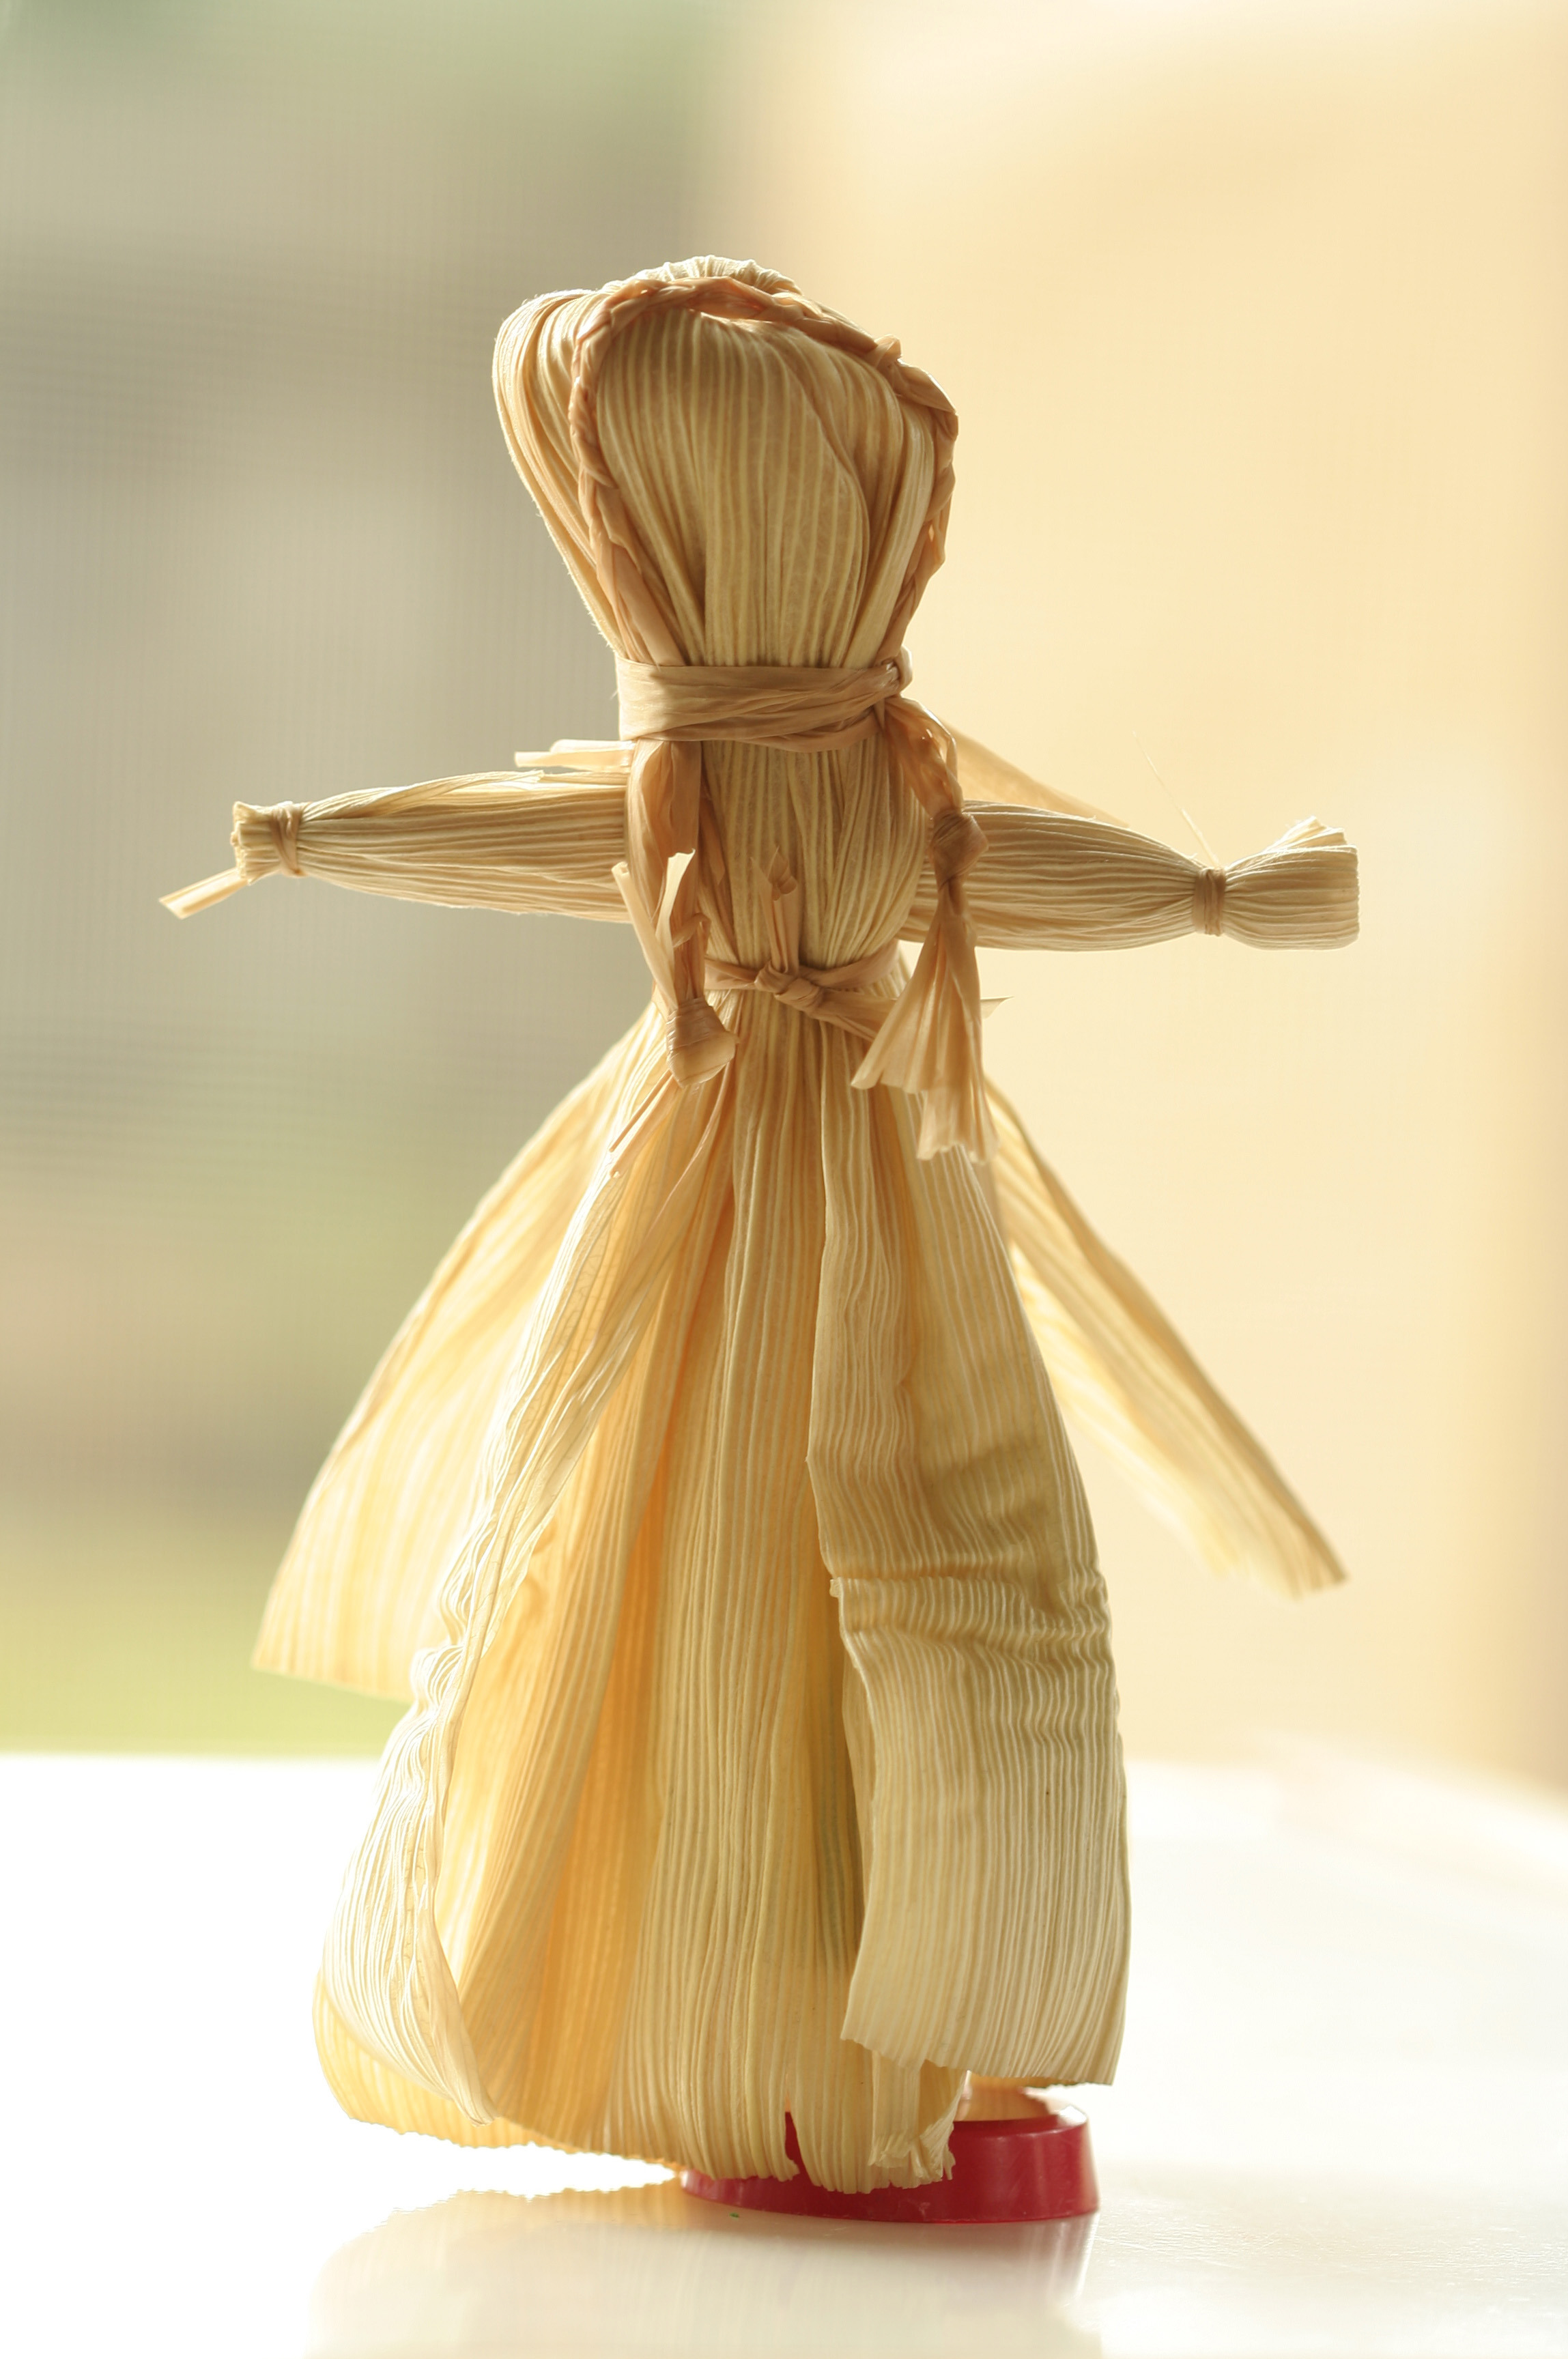 Corn husk doll - Wikipedia